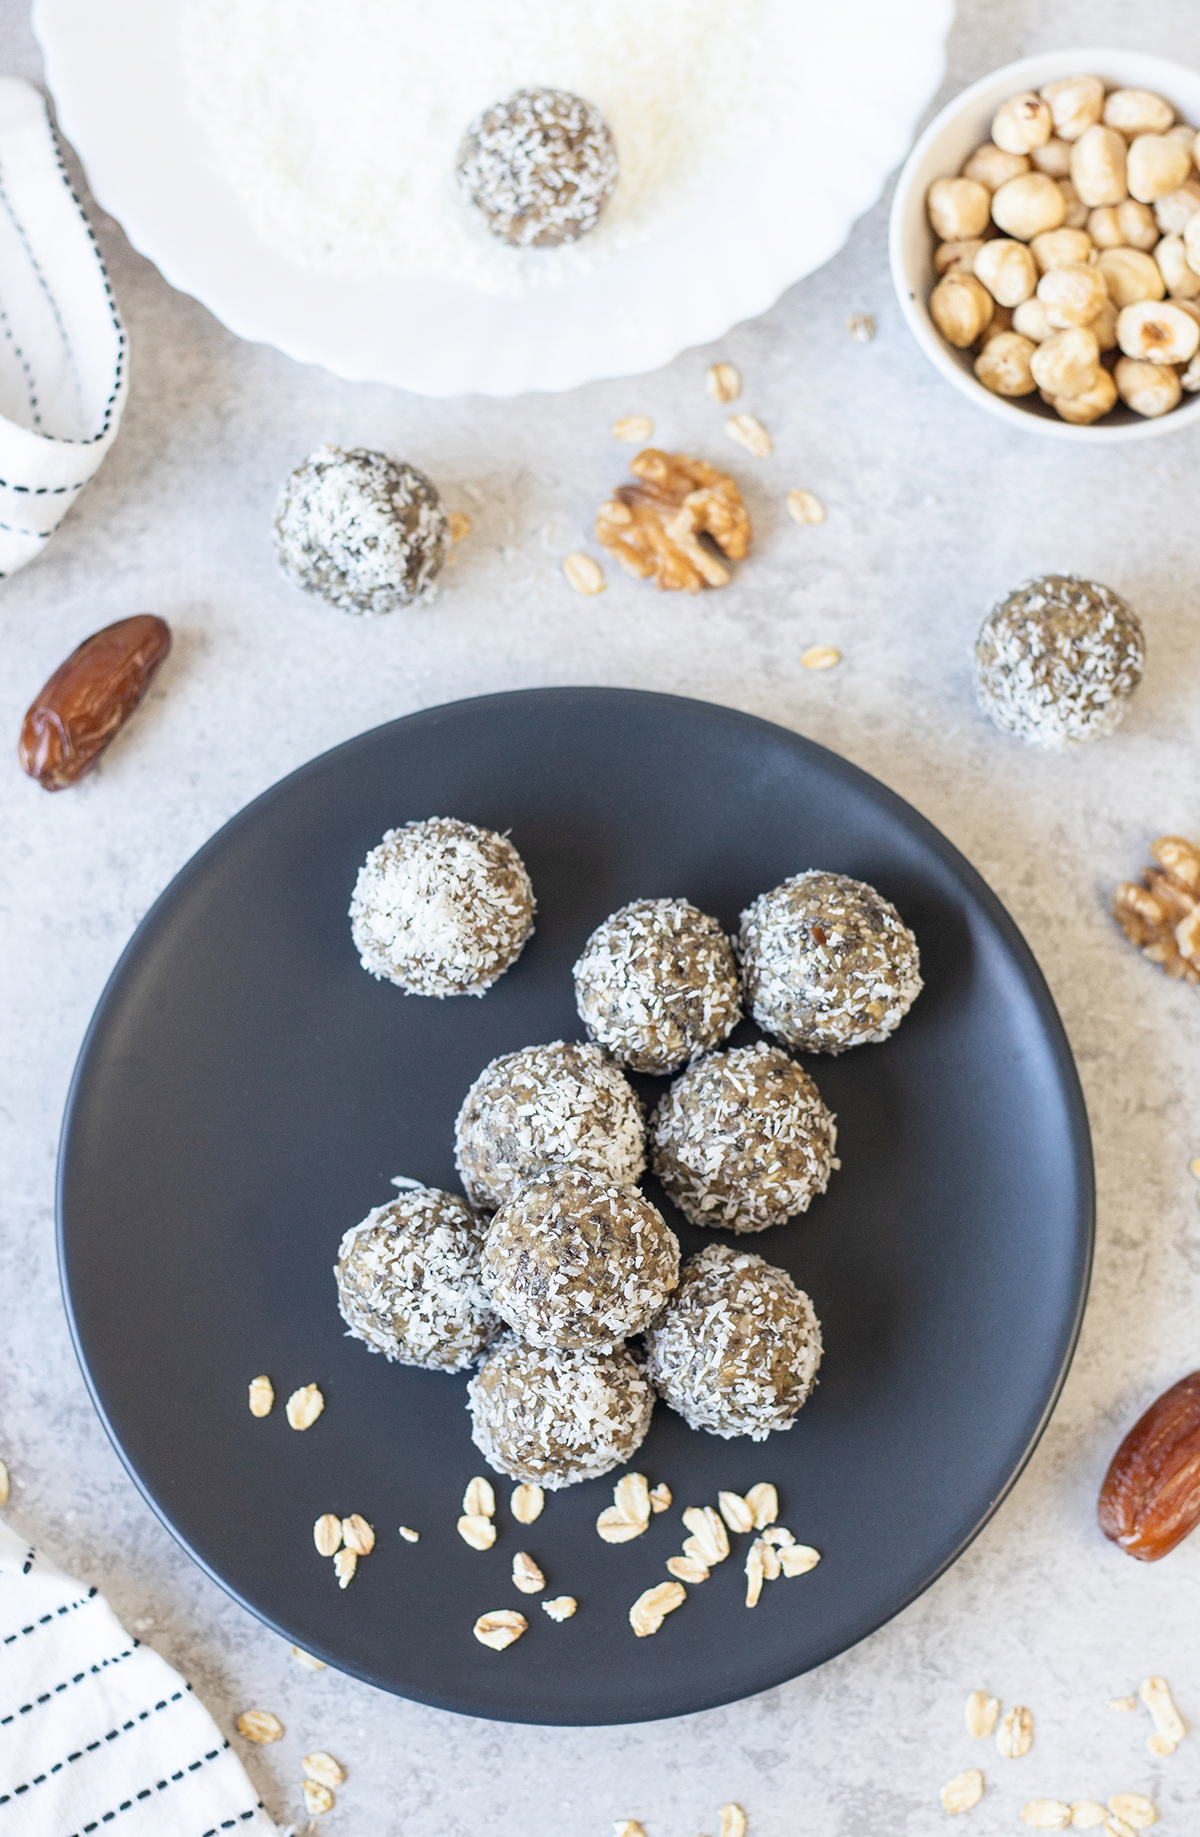 no-bake energy bites are so nutritious, made with super healthy food